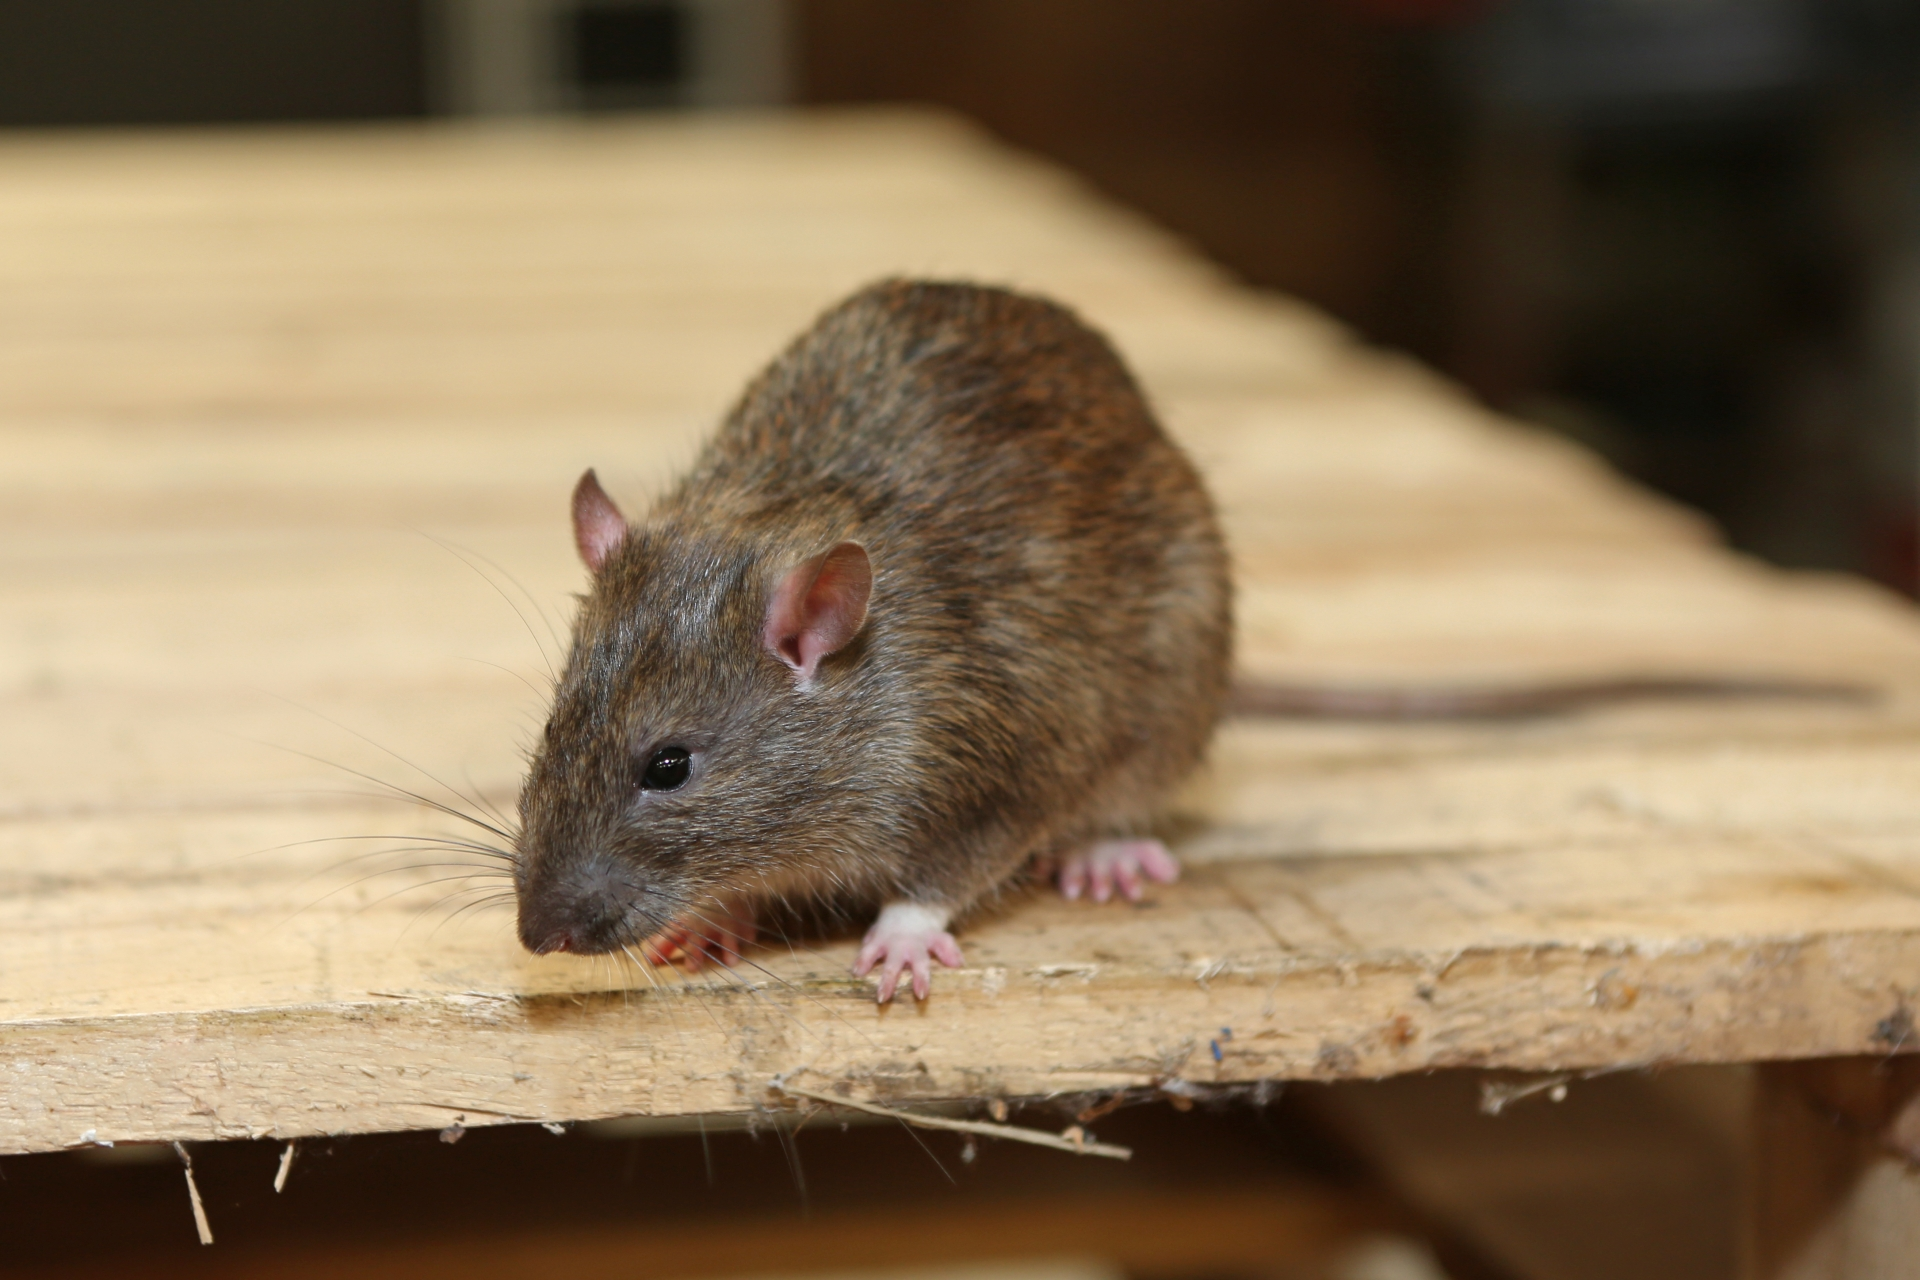 Rat Infestation, Pest Control in West Byfleet, Byfleet, KT14. Call Now 020 8166 9746